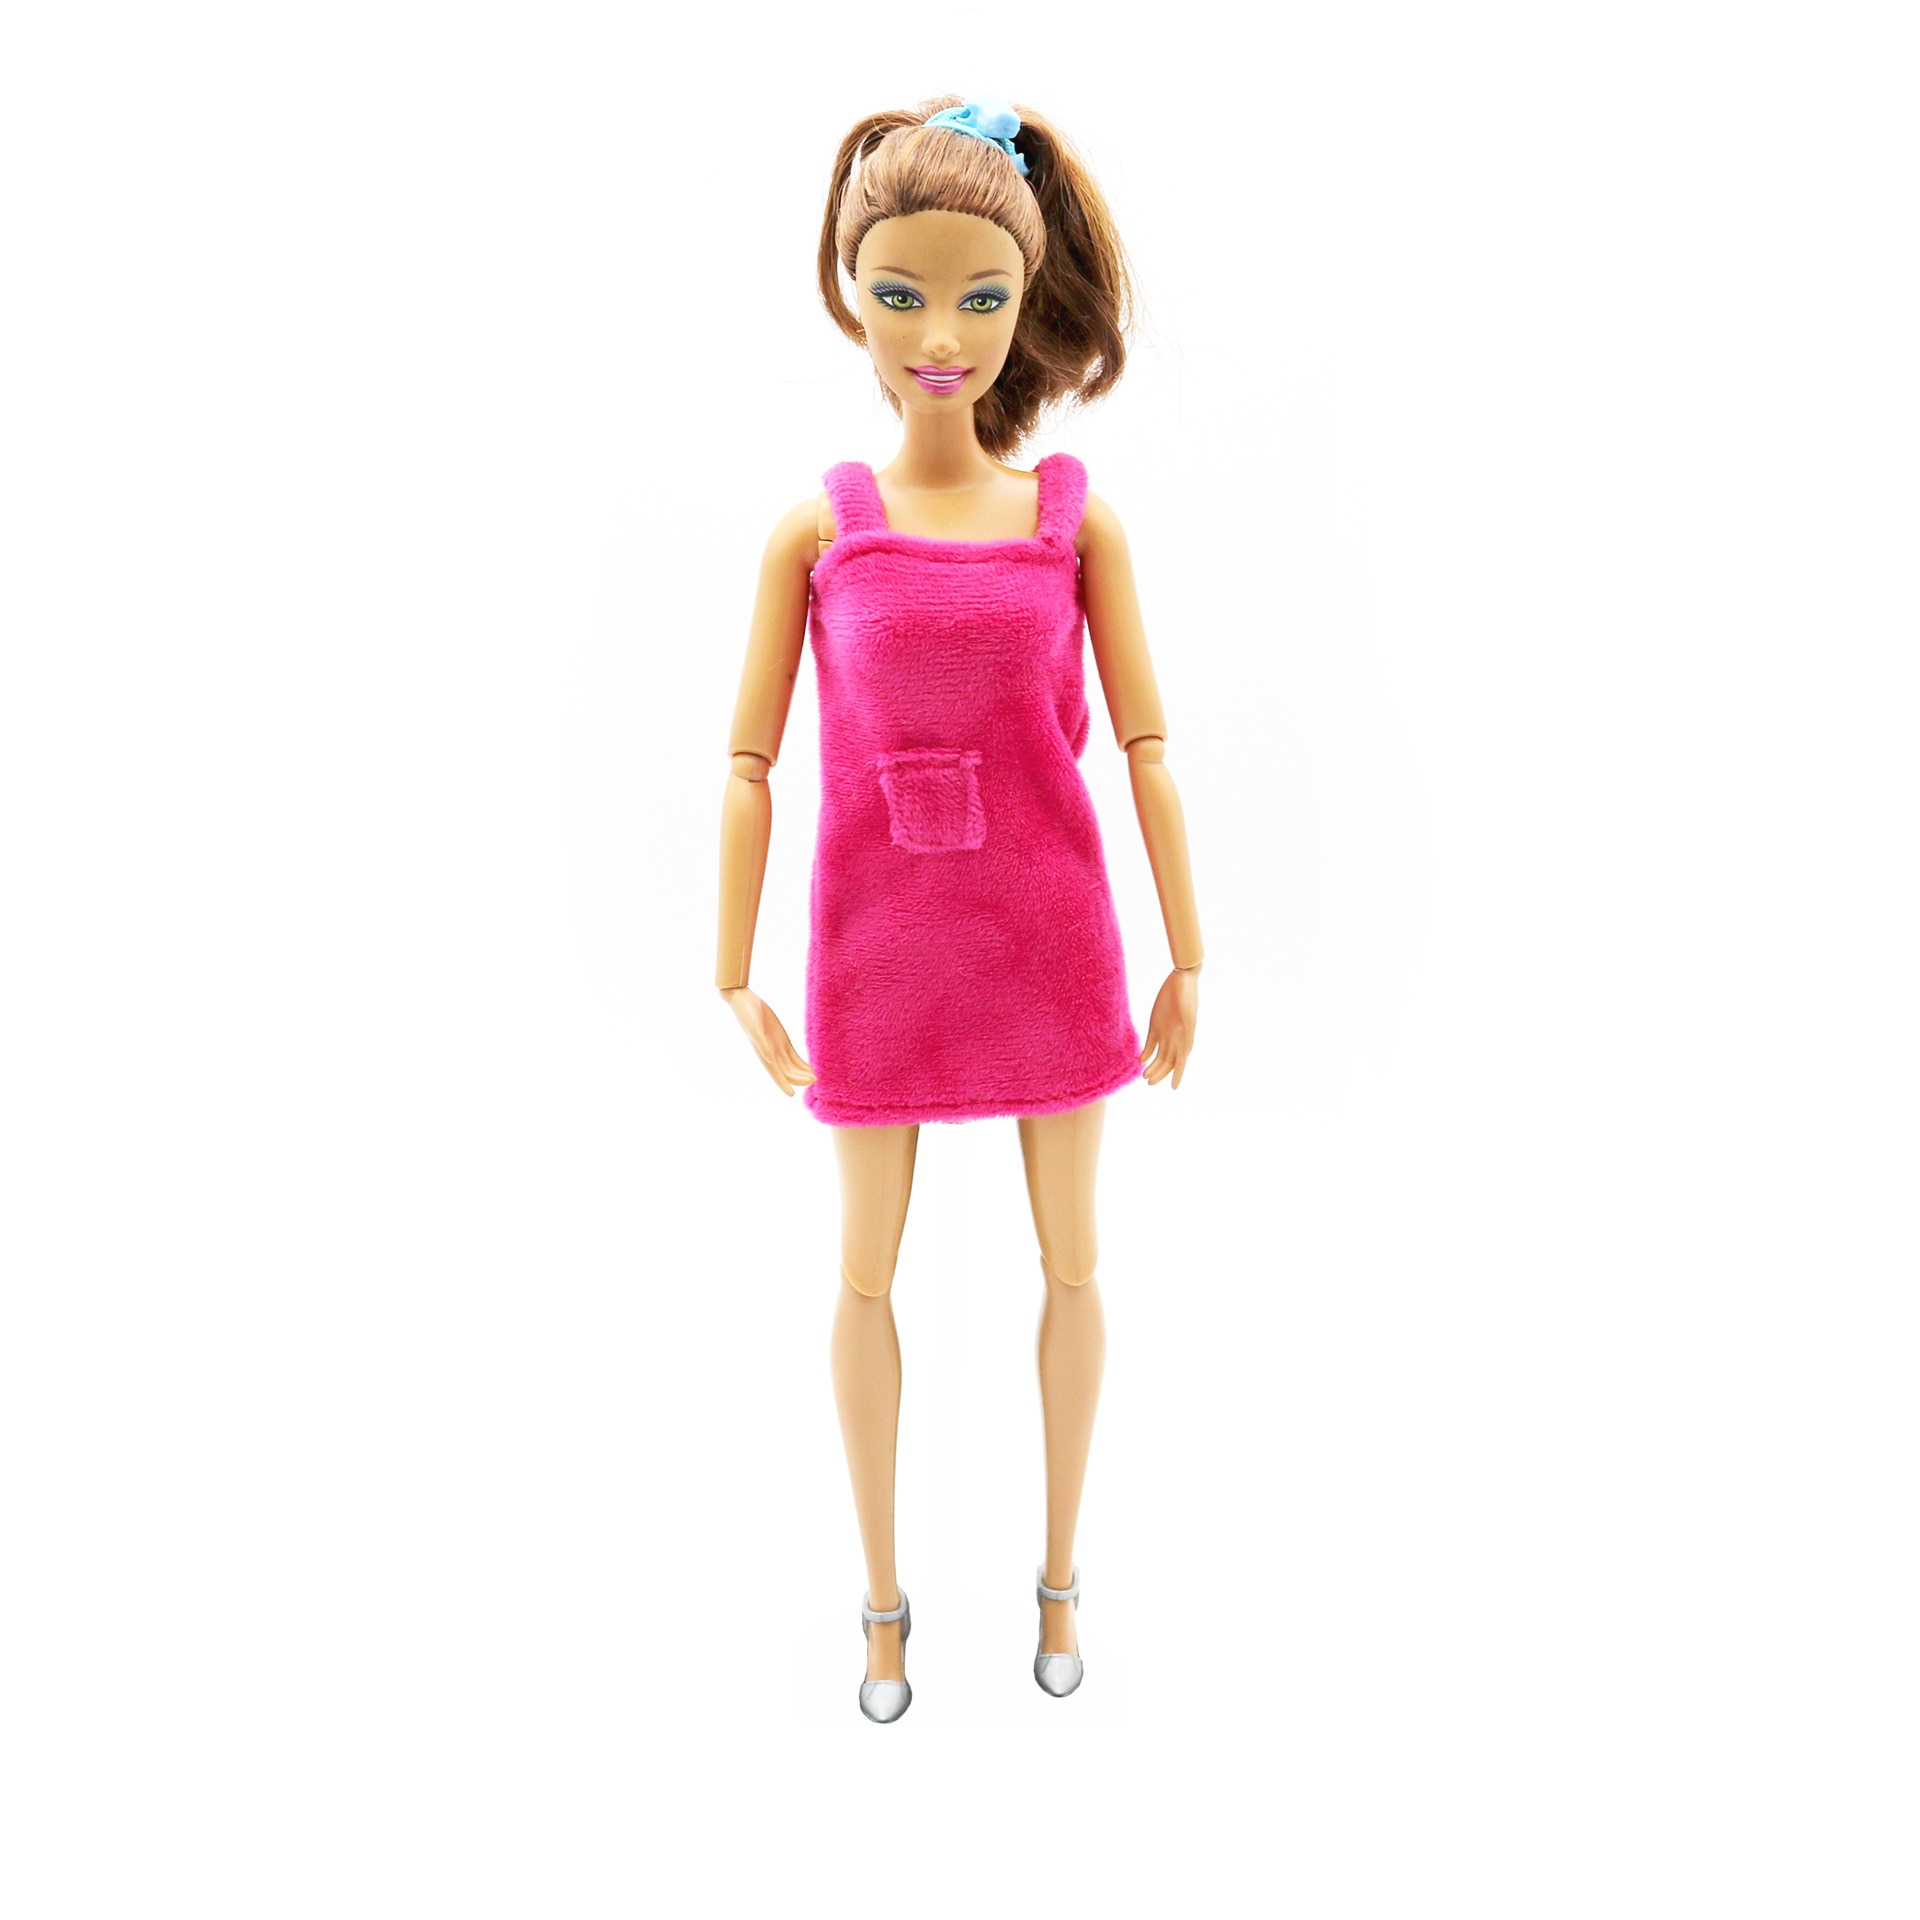 princess dress outfits doll clothes for barbie accessories play house dressing up costume kids toys gift Red Sleep Wear Outfits for Barbie  BJD Doll Dress Clothes Accessories Play House Dressing Up  Kids Toys